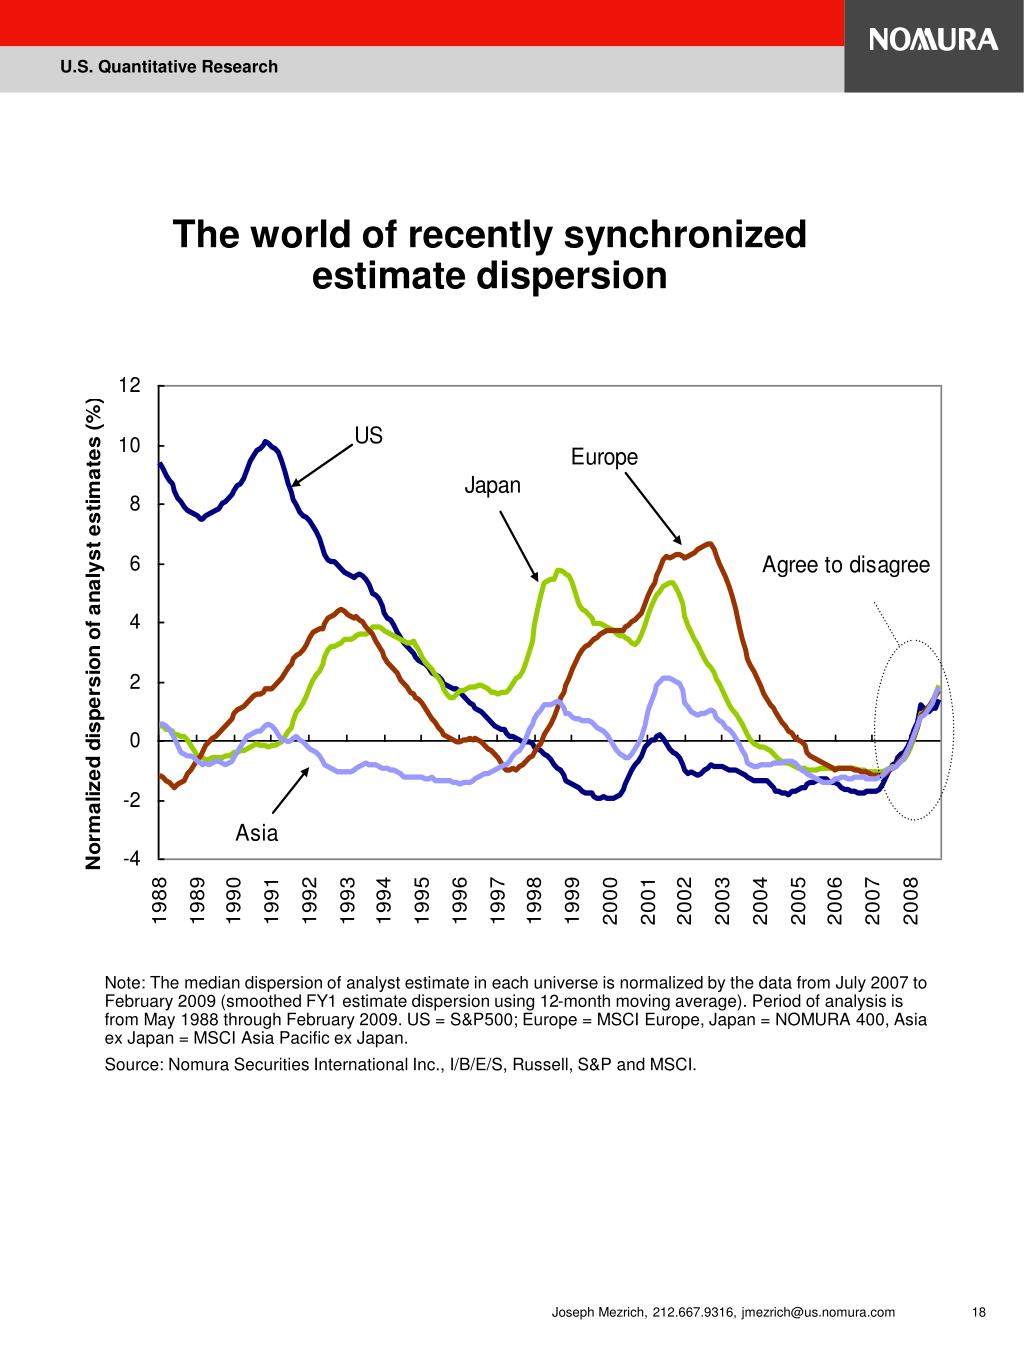 The world of recently synchronized estimate dispersion